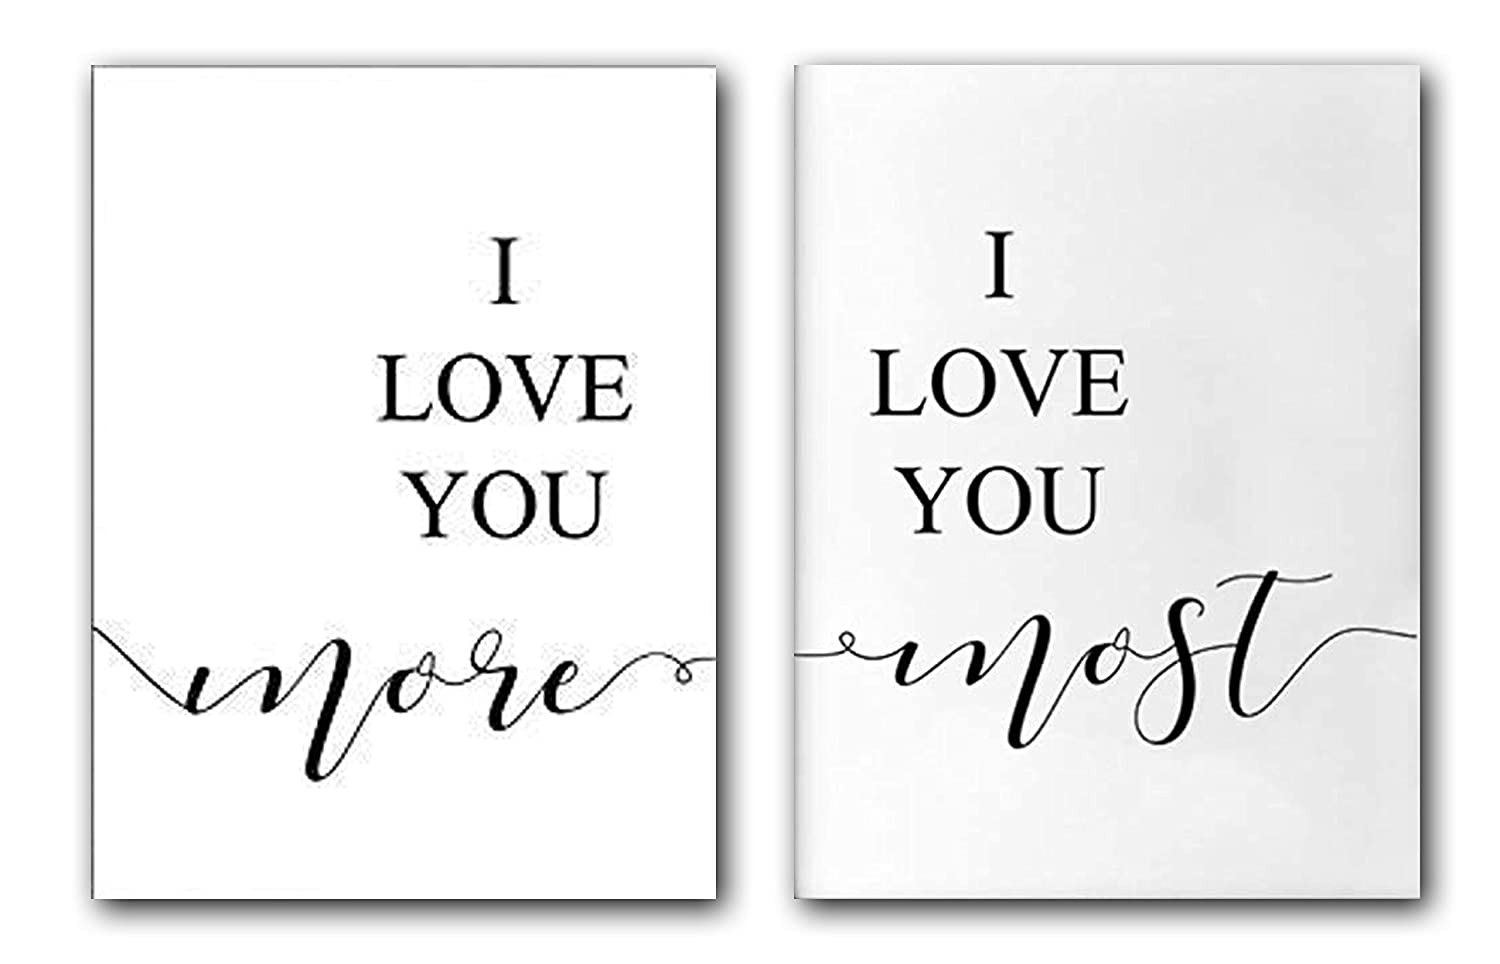 I love you more, I love you most, Set of 2 Wall Art Decor 24 x 36 Inches Poster Print UNFRAMED